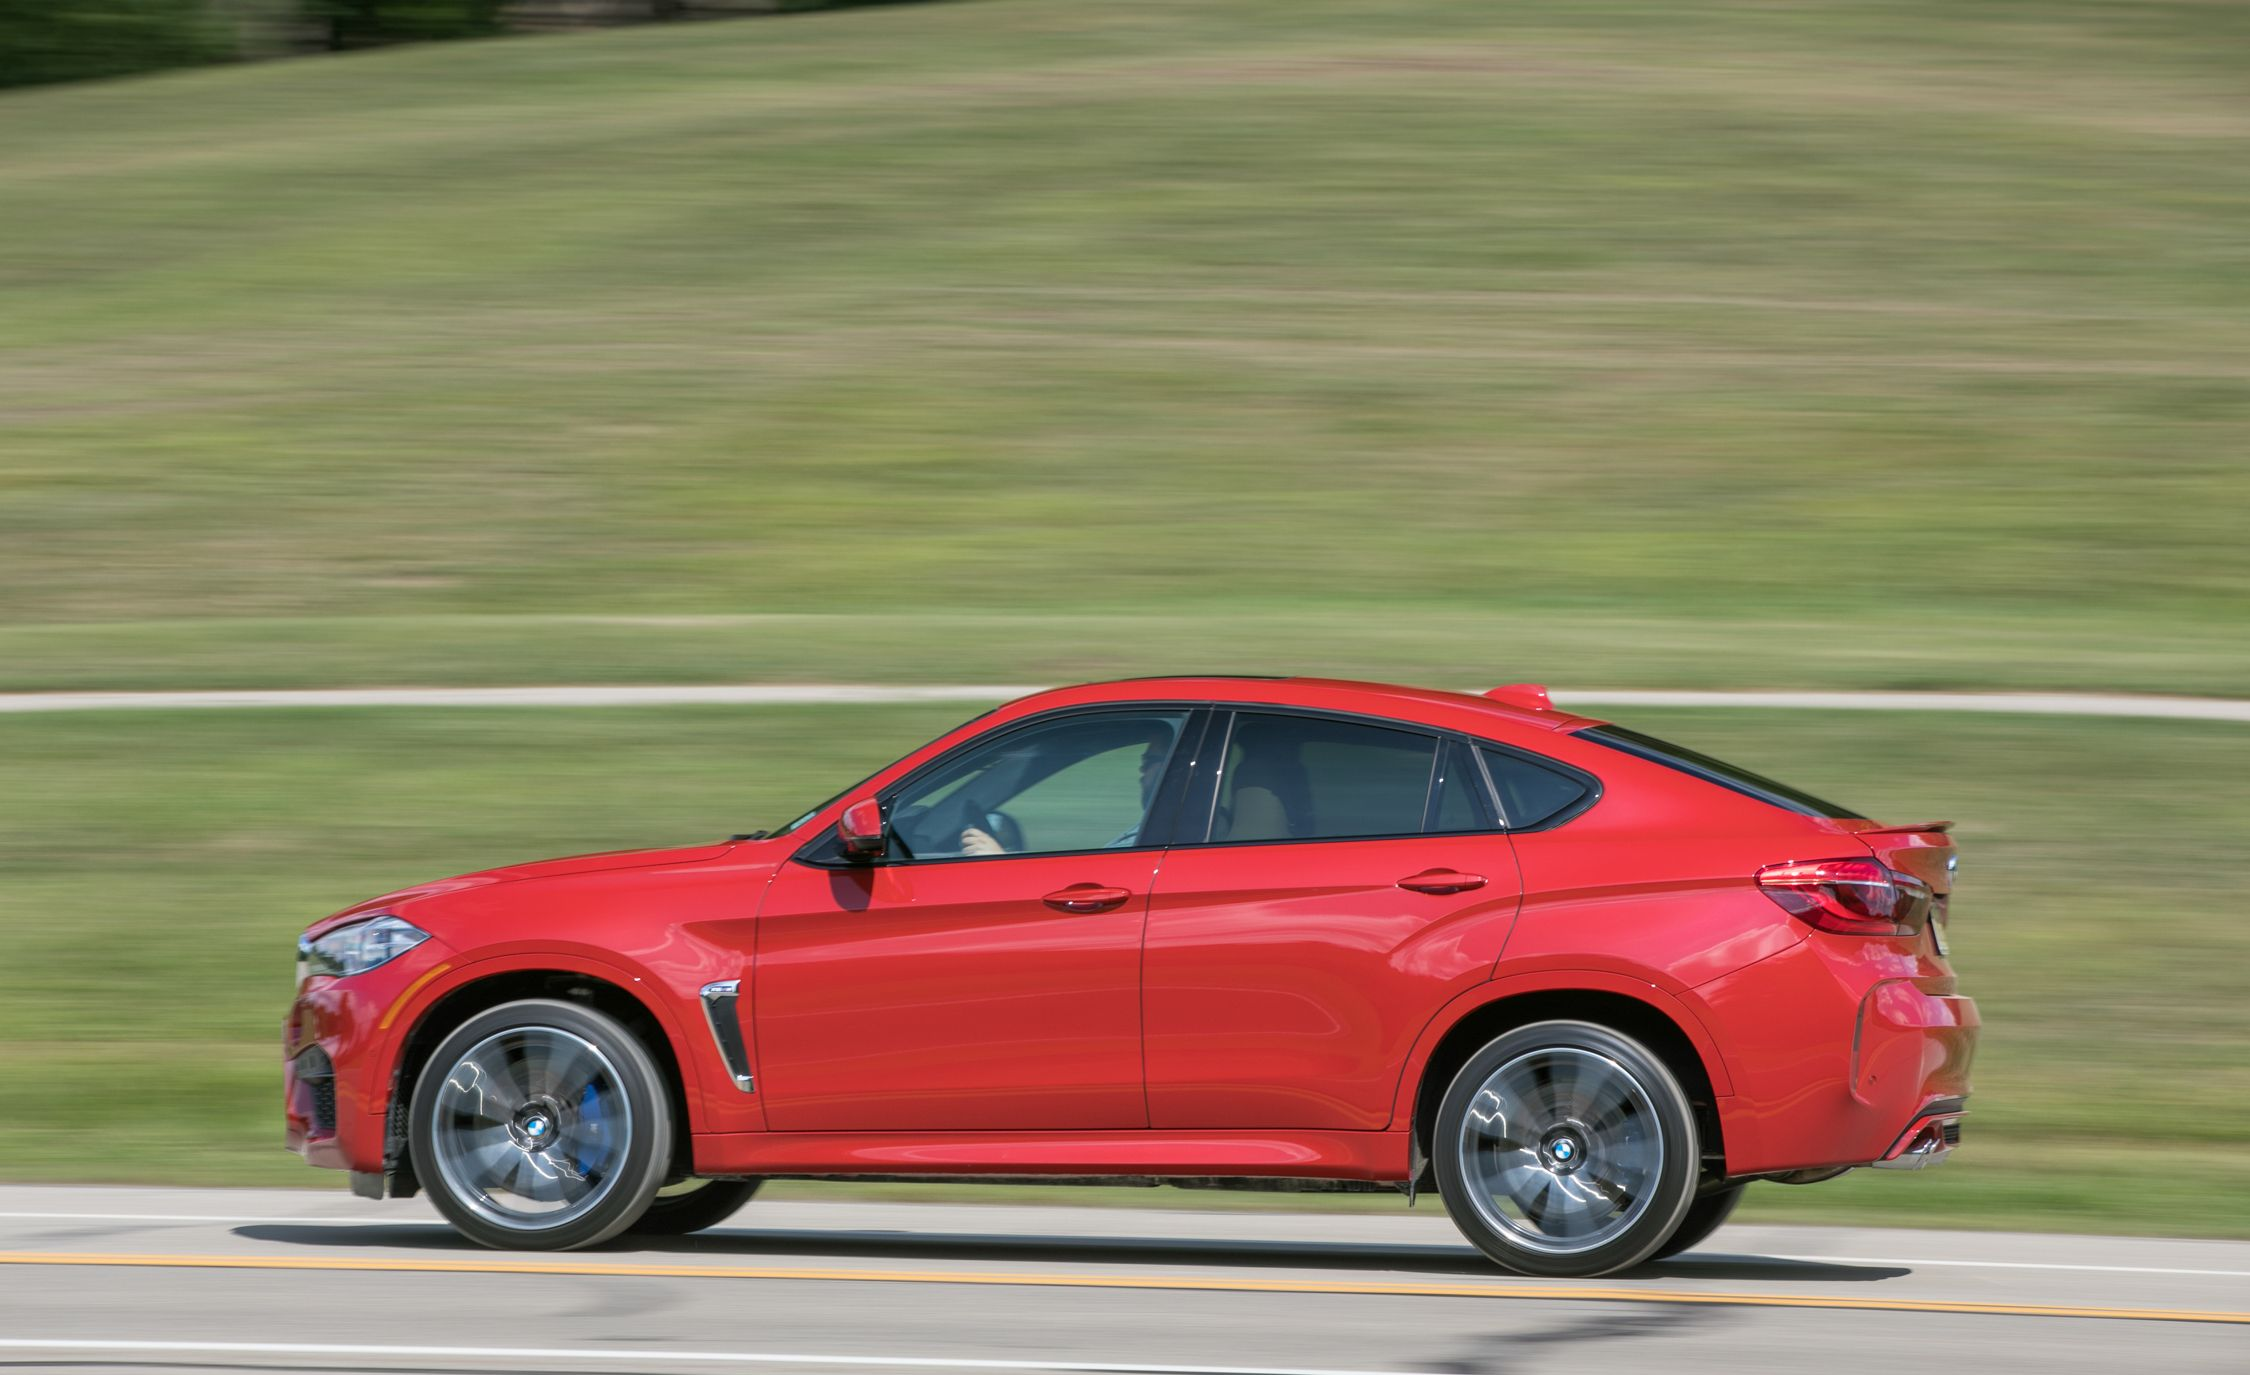 Bmw X6 M Reviews Bmw X6 M Price Photos And Specs Car And Driver